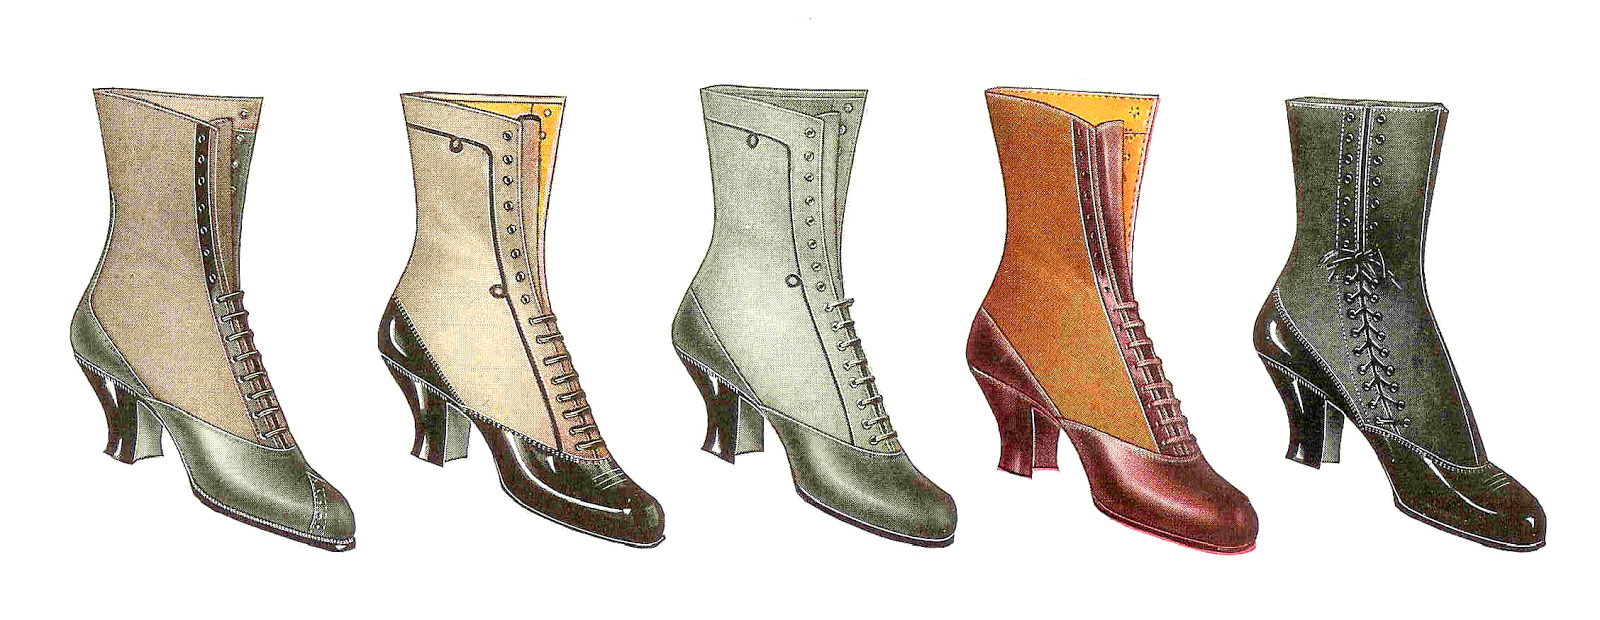 Boots fashion pic boots clip art - I Ve Posted Some More Of My Favorite Vintage Fashion Clip Art Shoes Aren T These Spectacular Vintage Boots This Vintage Graphic Is From A 1917 Clothes